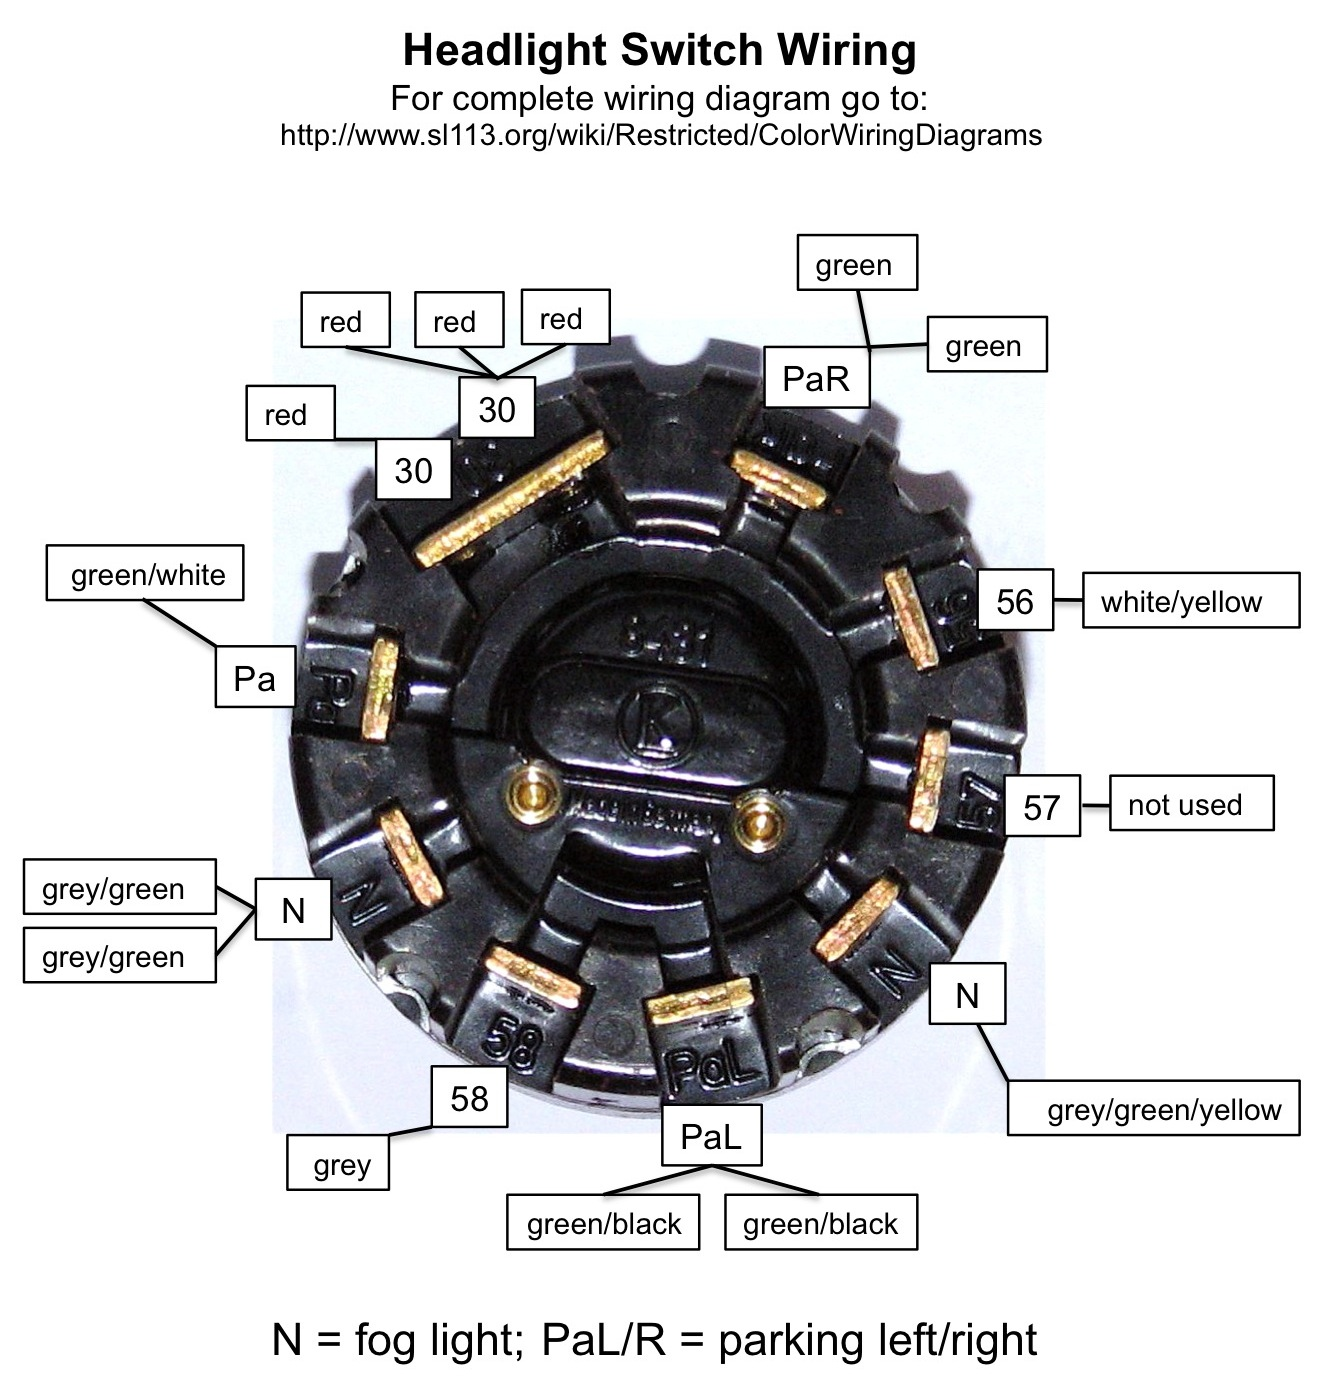 Lightswitch on car dimmer switch wiring